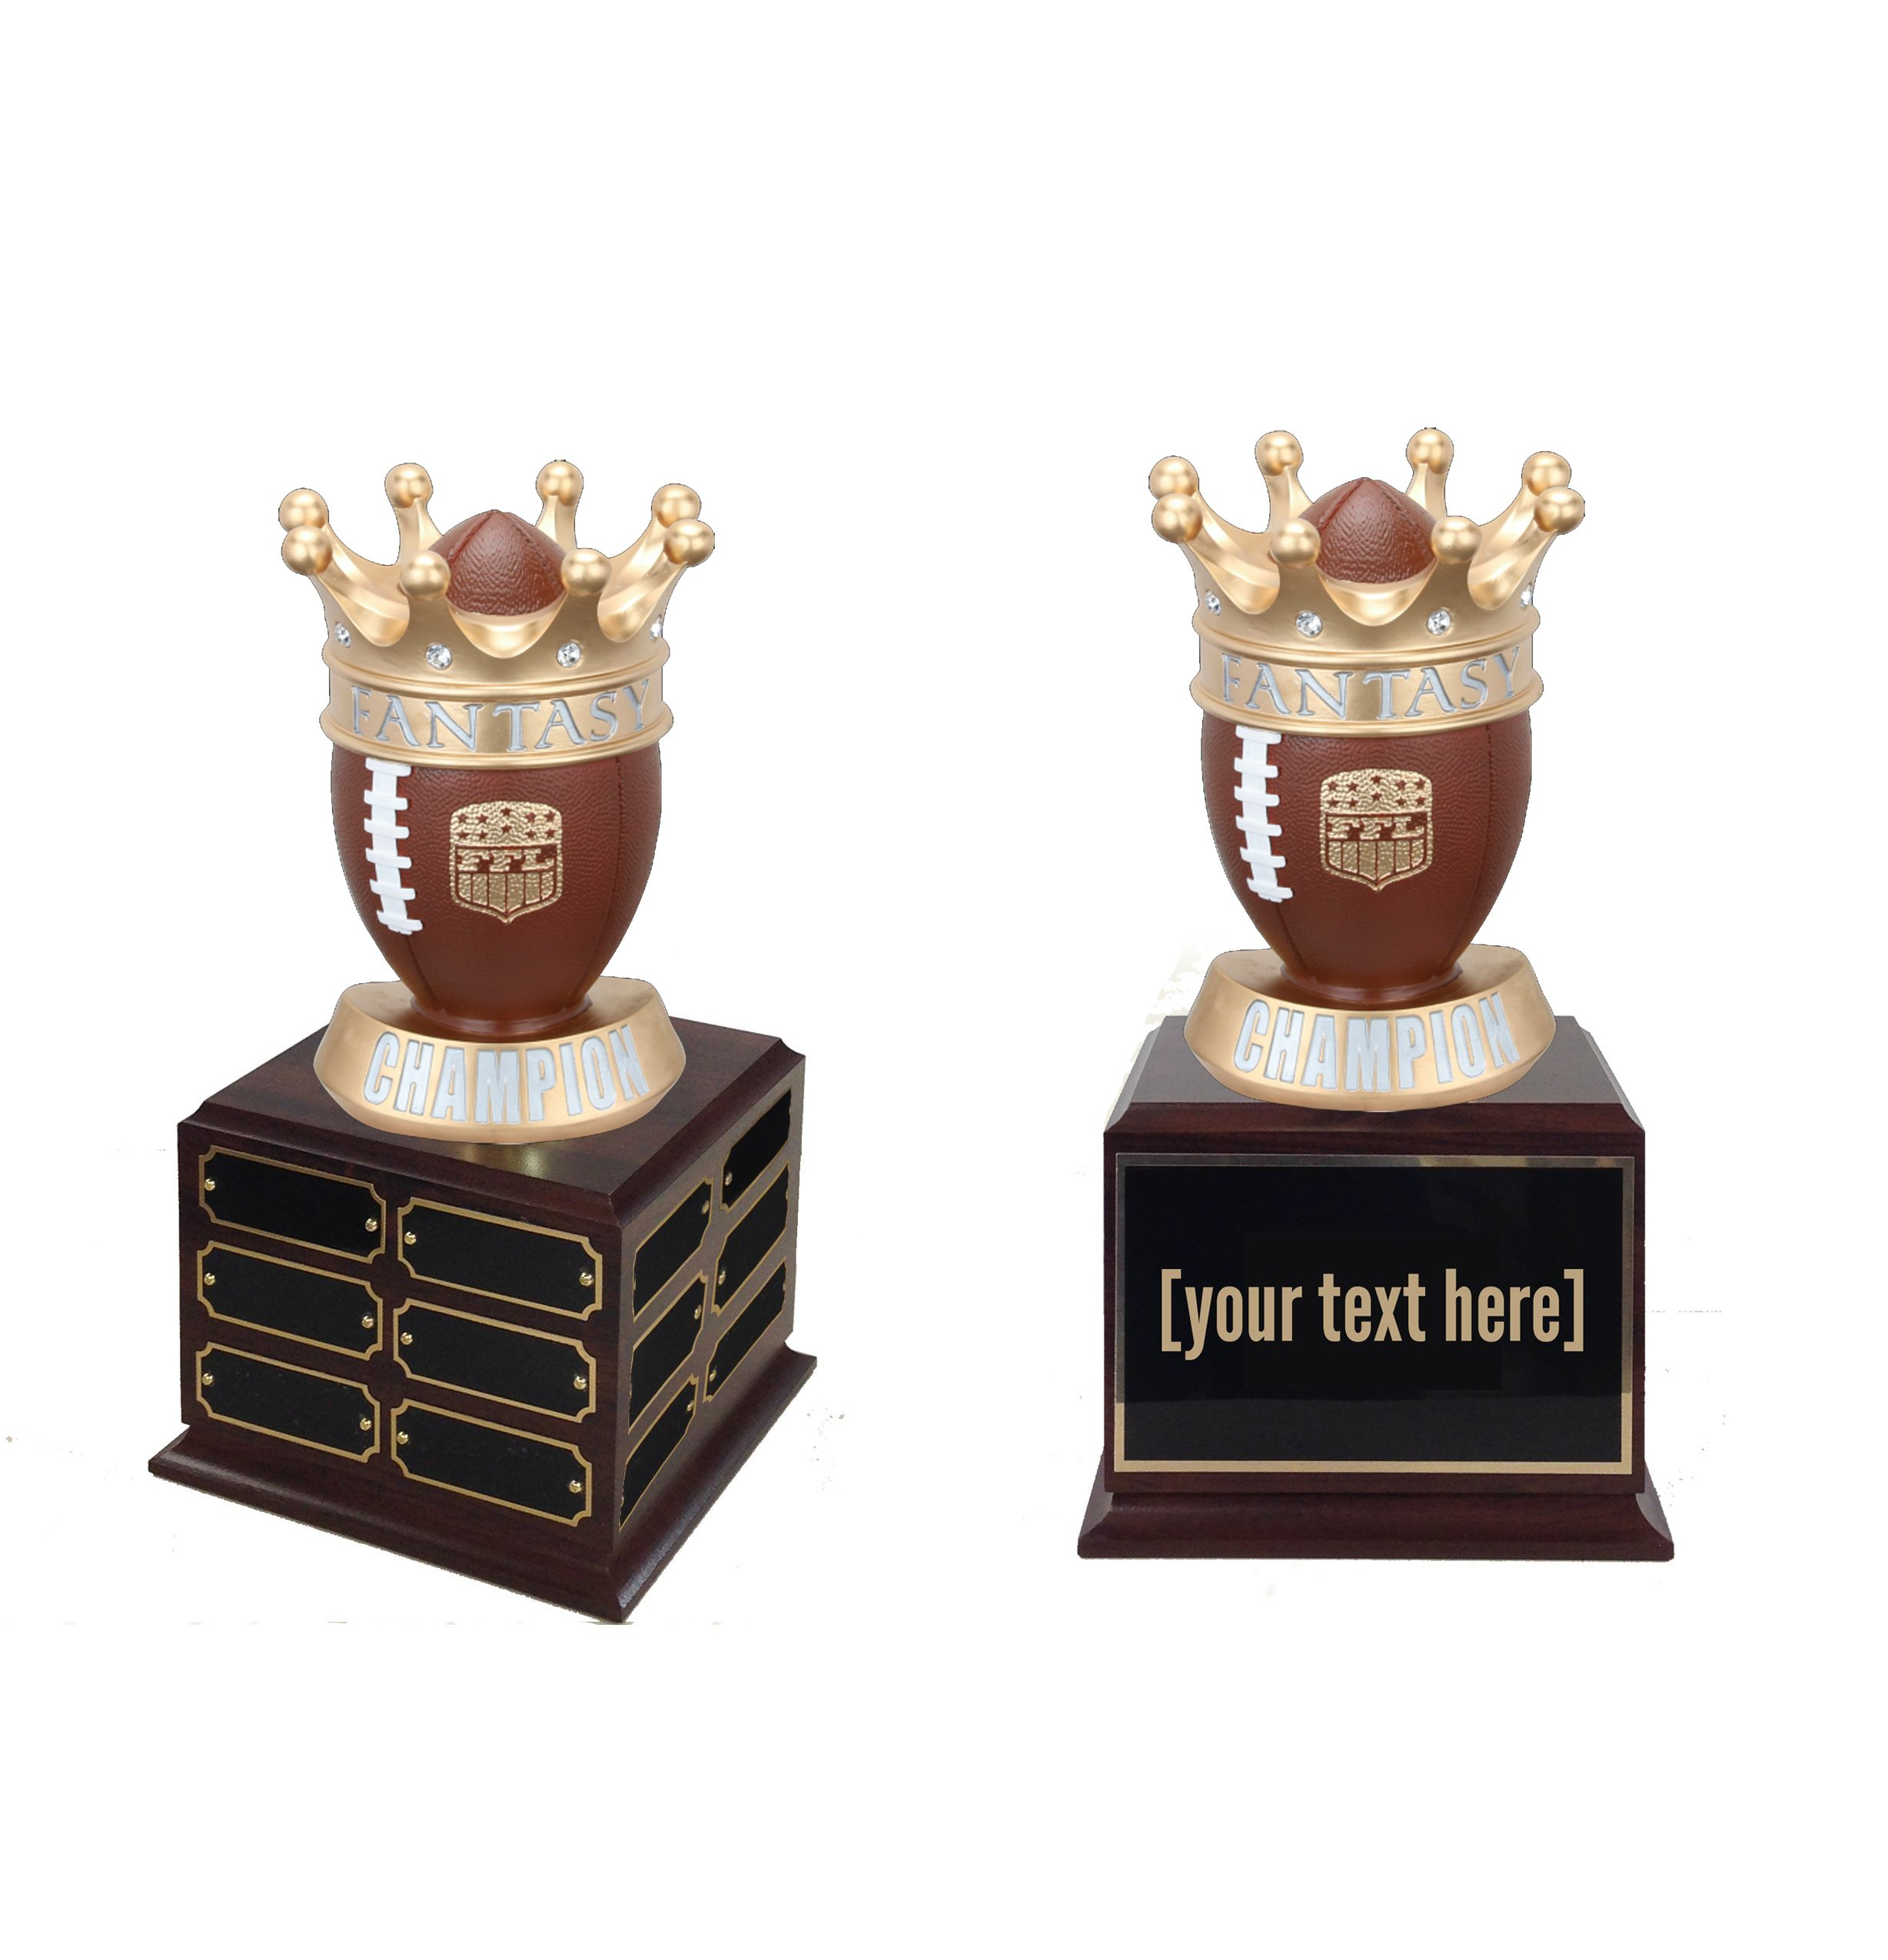 Traveling Trophy Fantasy Football Buy Awards Trophies